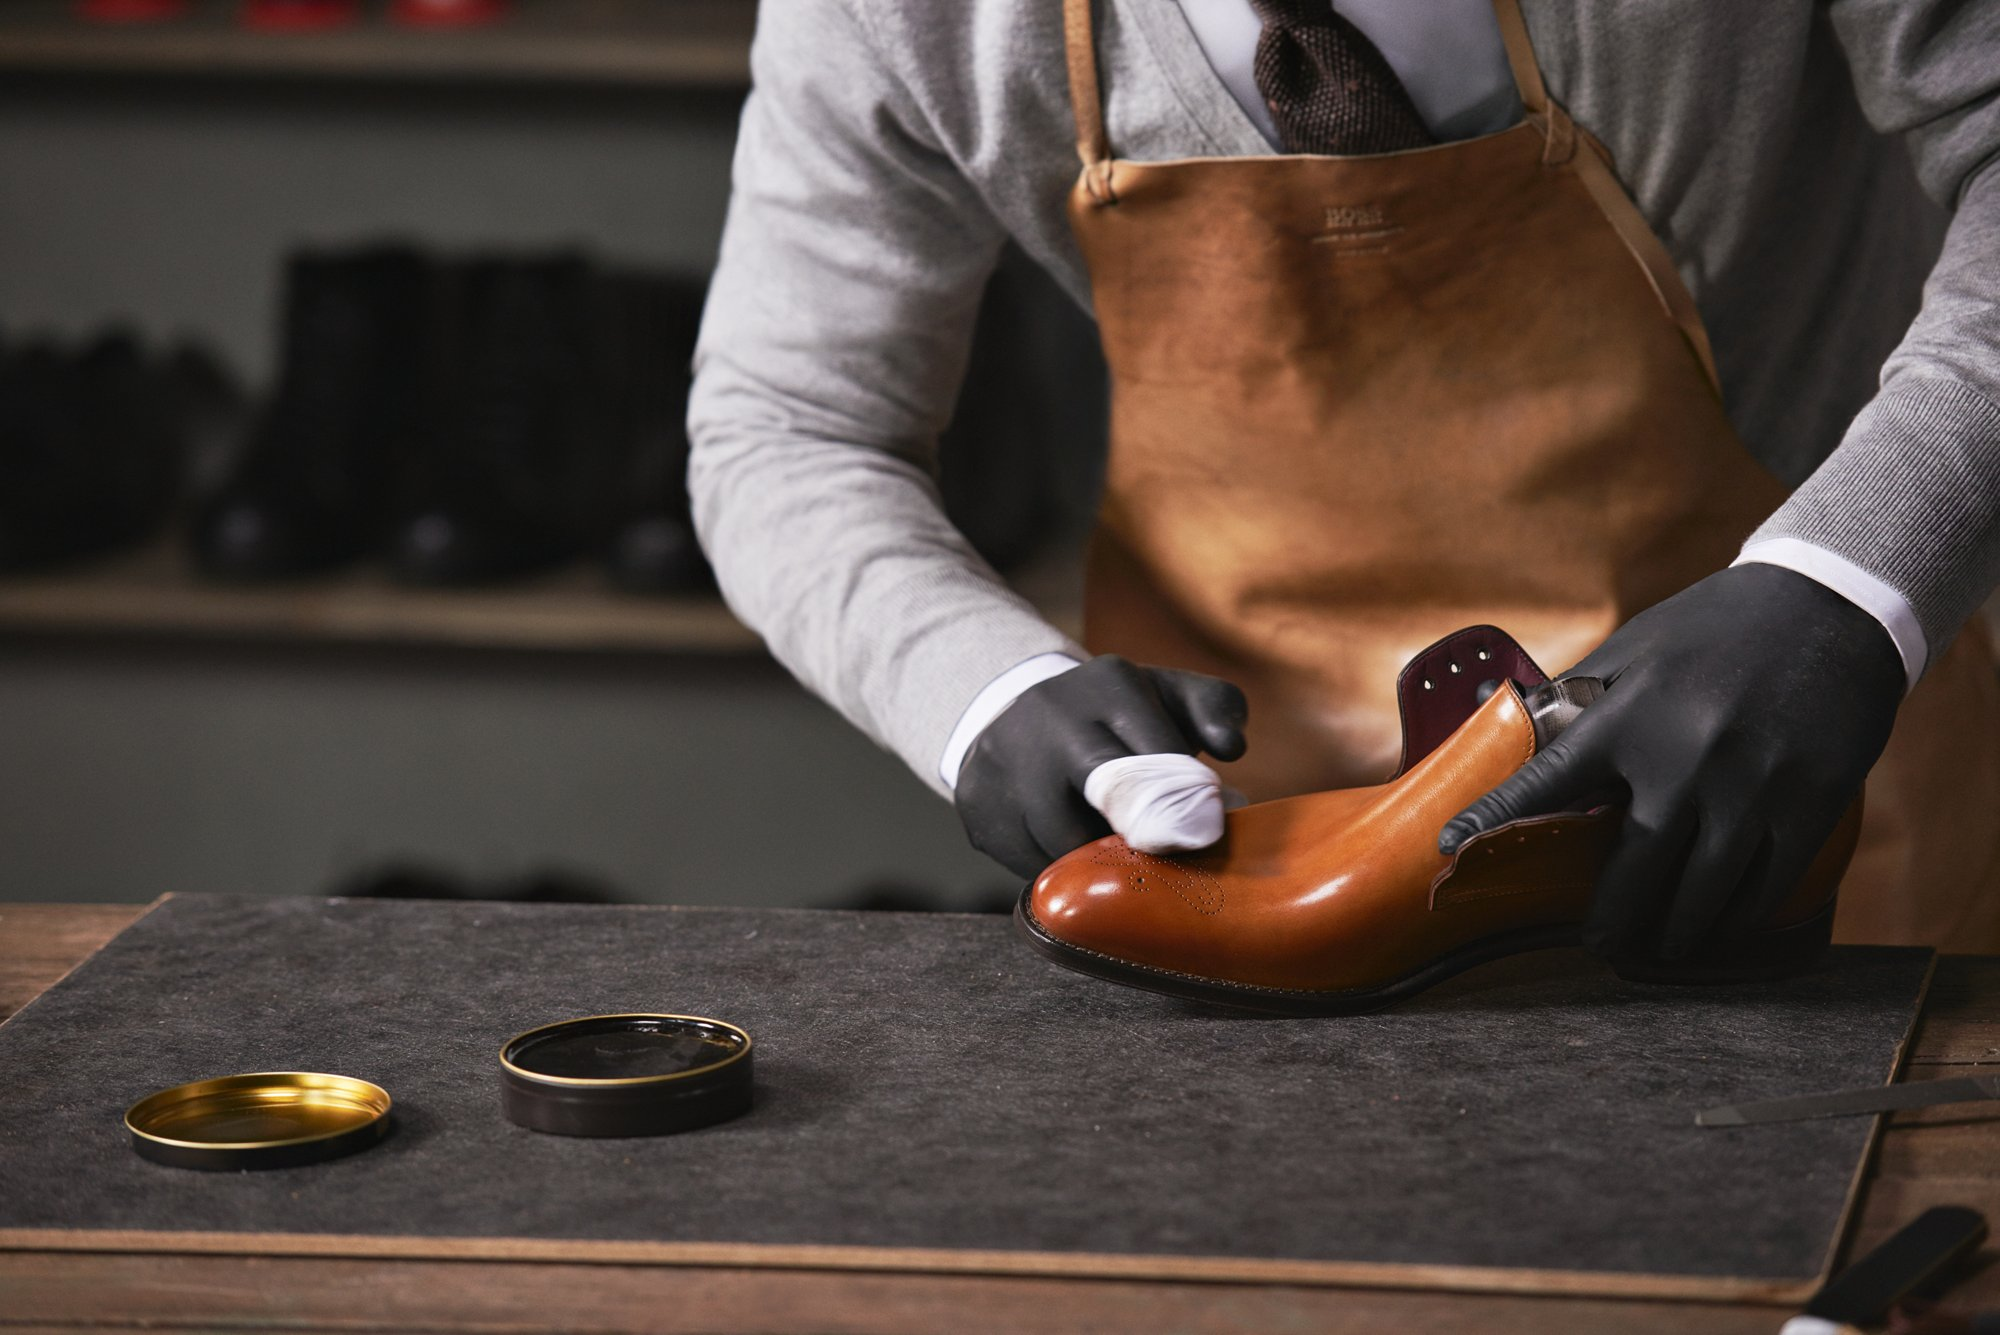 Shoe production: Waxing the shoe for a perfect finish